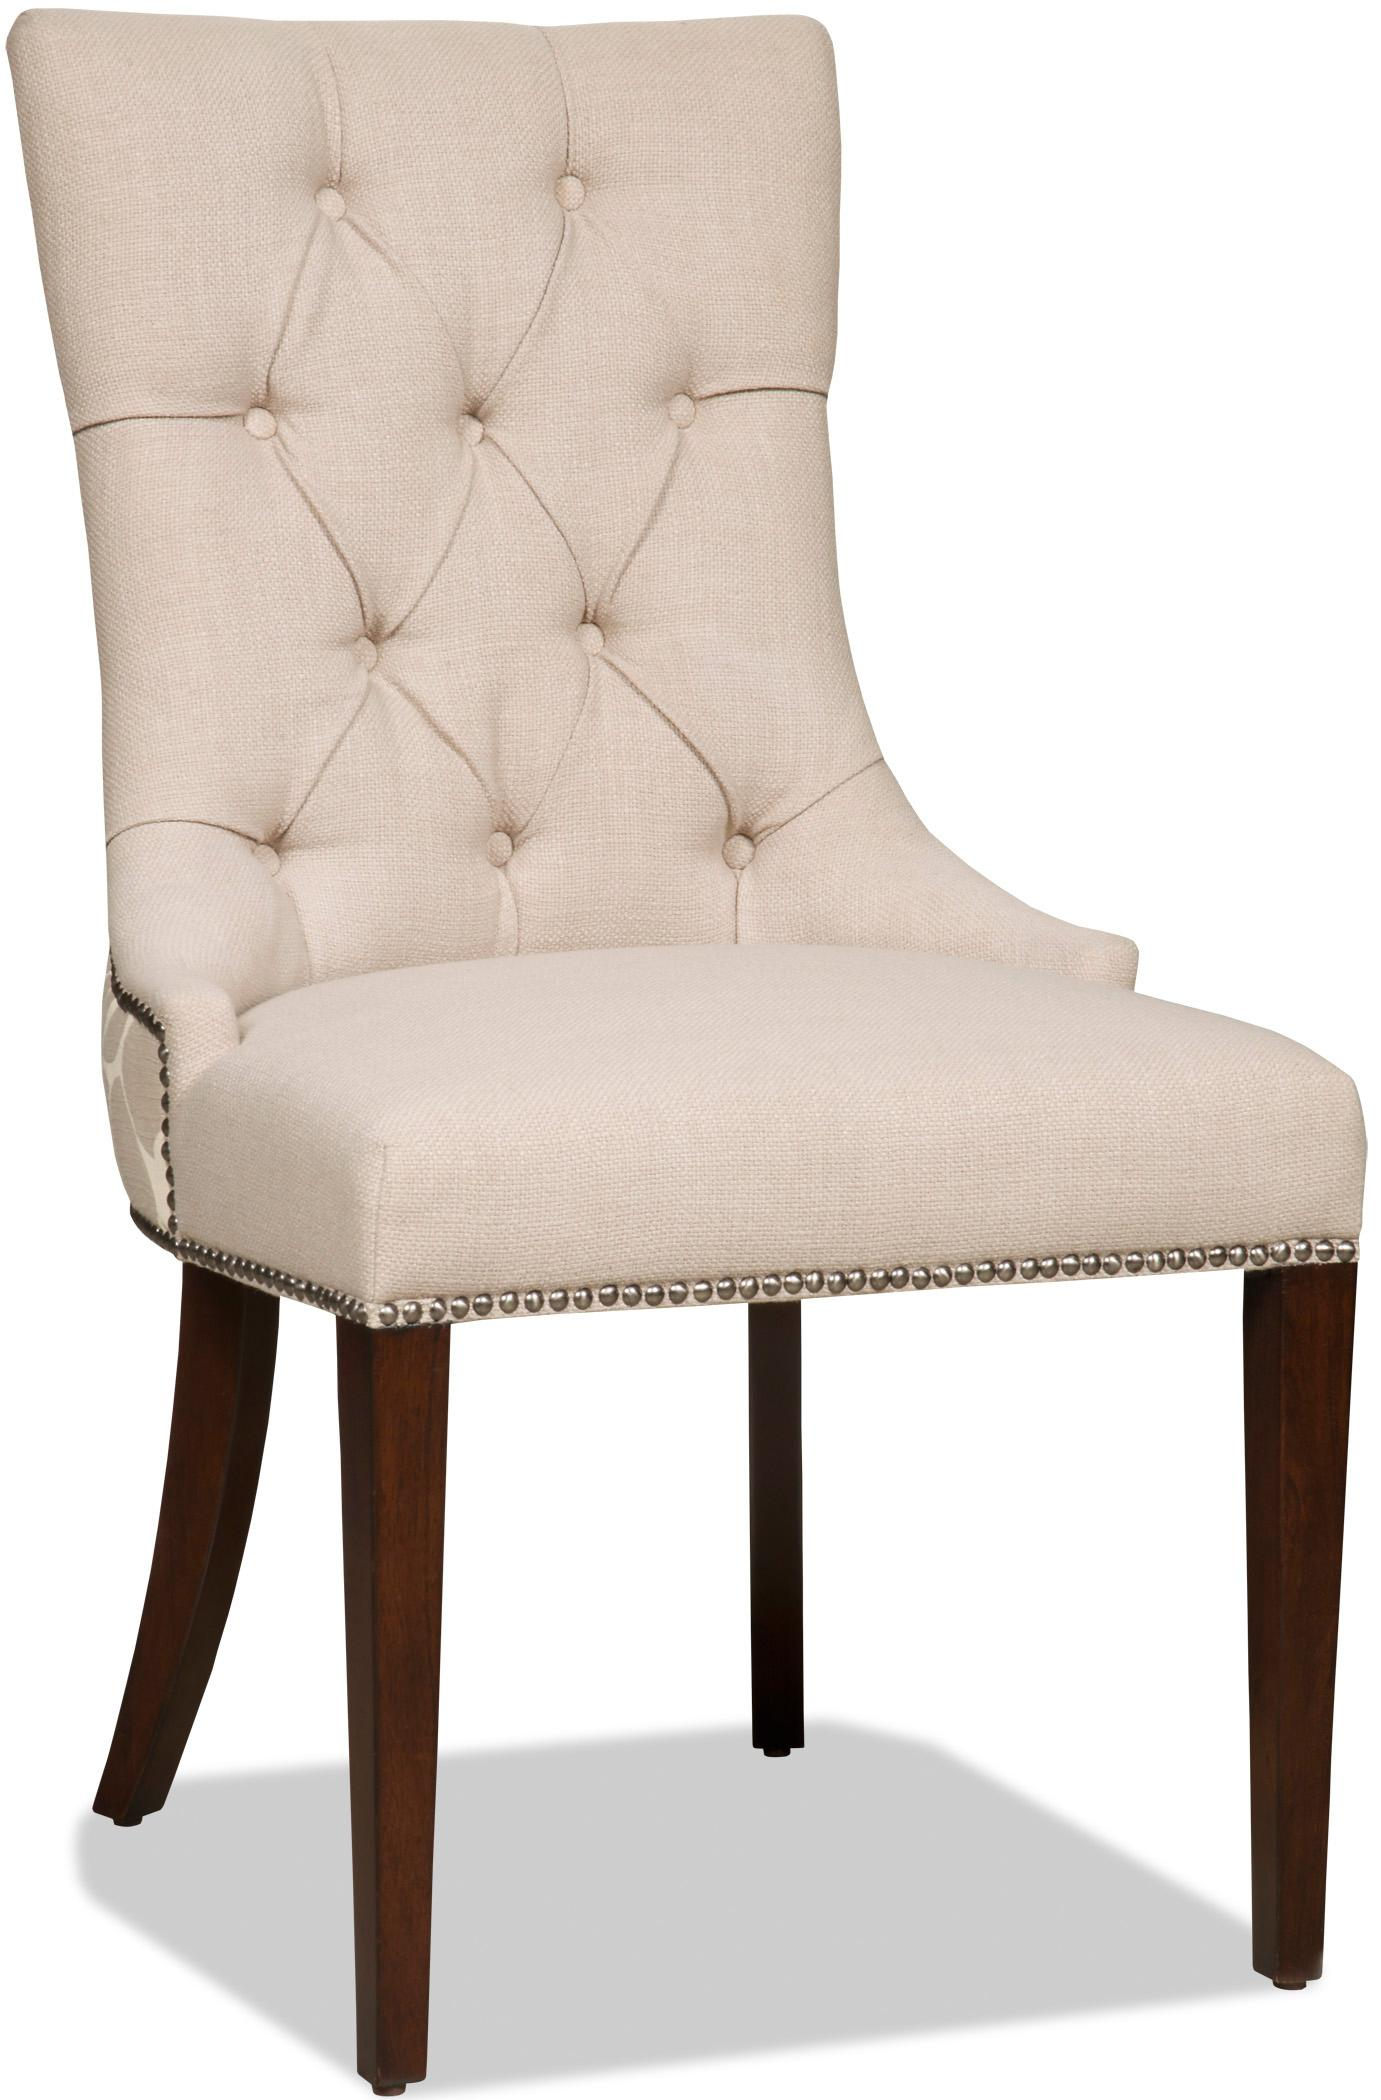 Hamilton Home Dining Chairs Dining Chair - Item Number: 300-350031